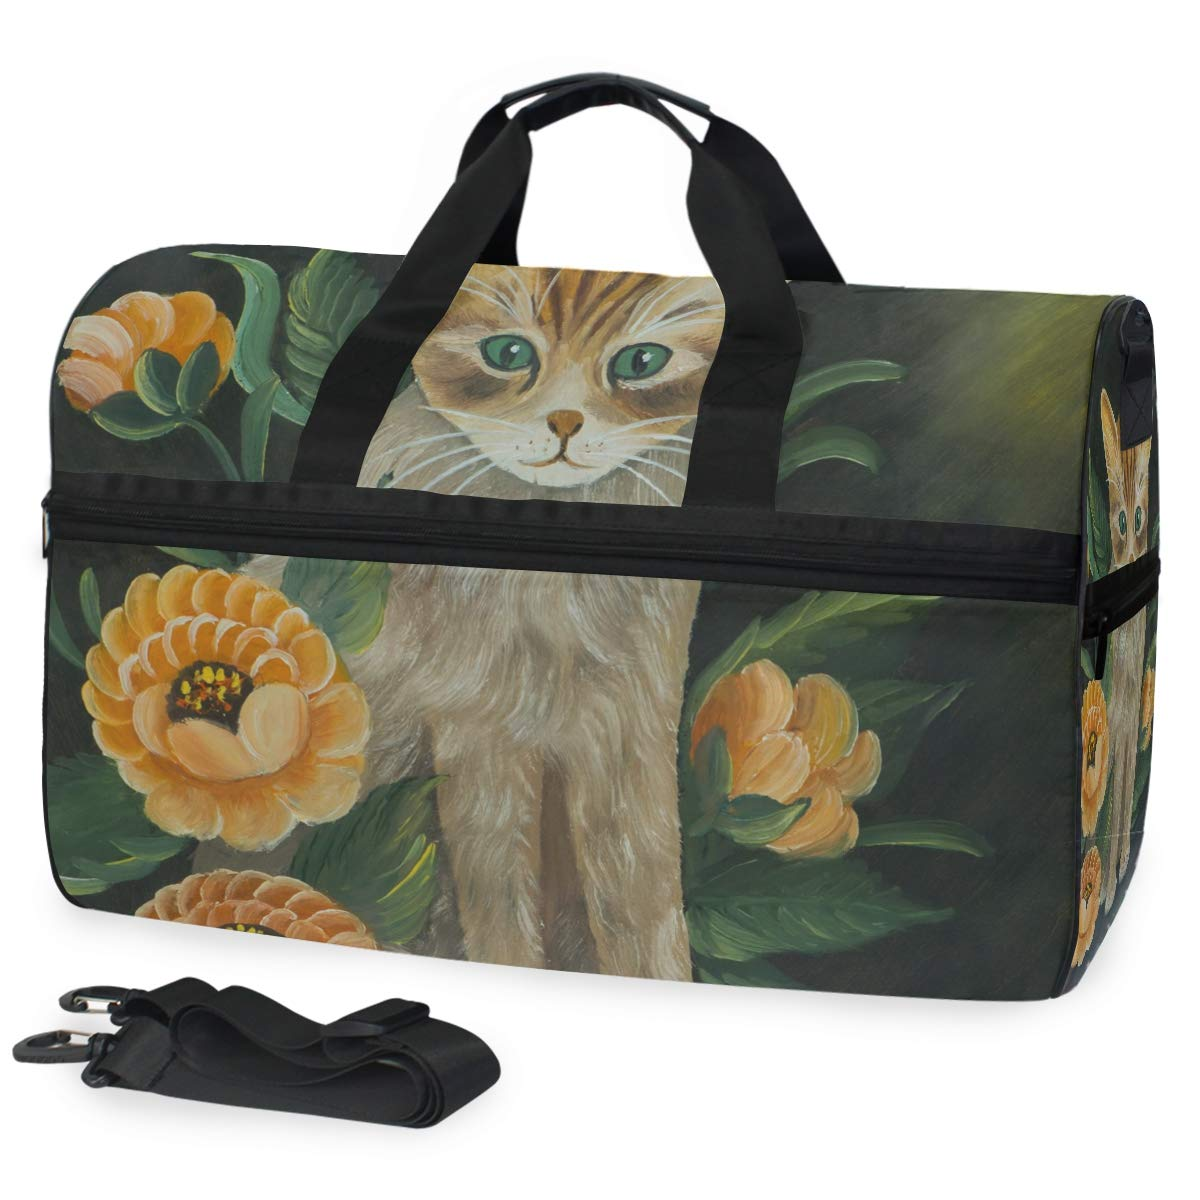 Travel Duffel Bag Vintage Cat With Orange Flowers Waterproof Lightweight Luggage bag for Sports Vacation Gym